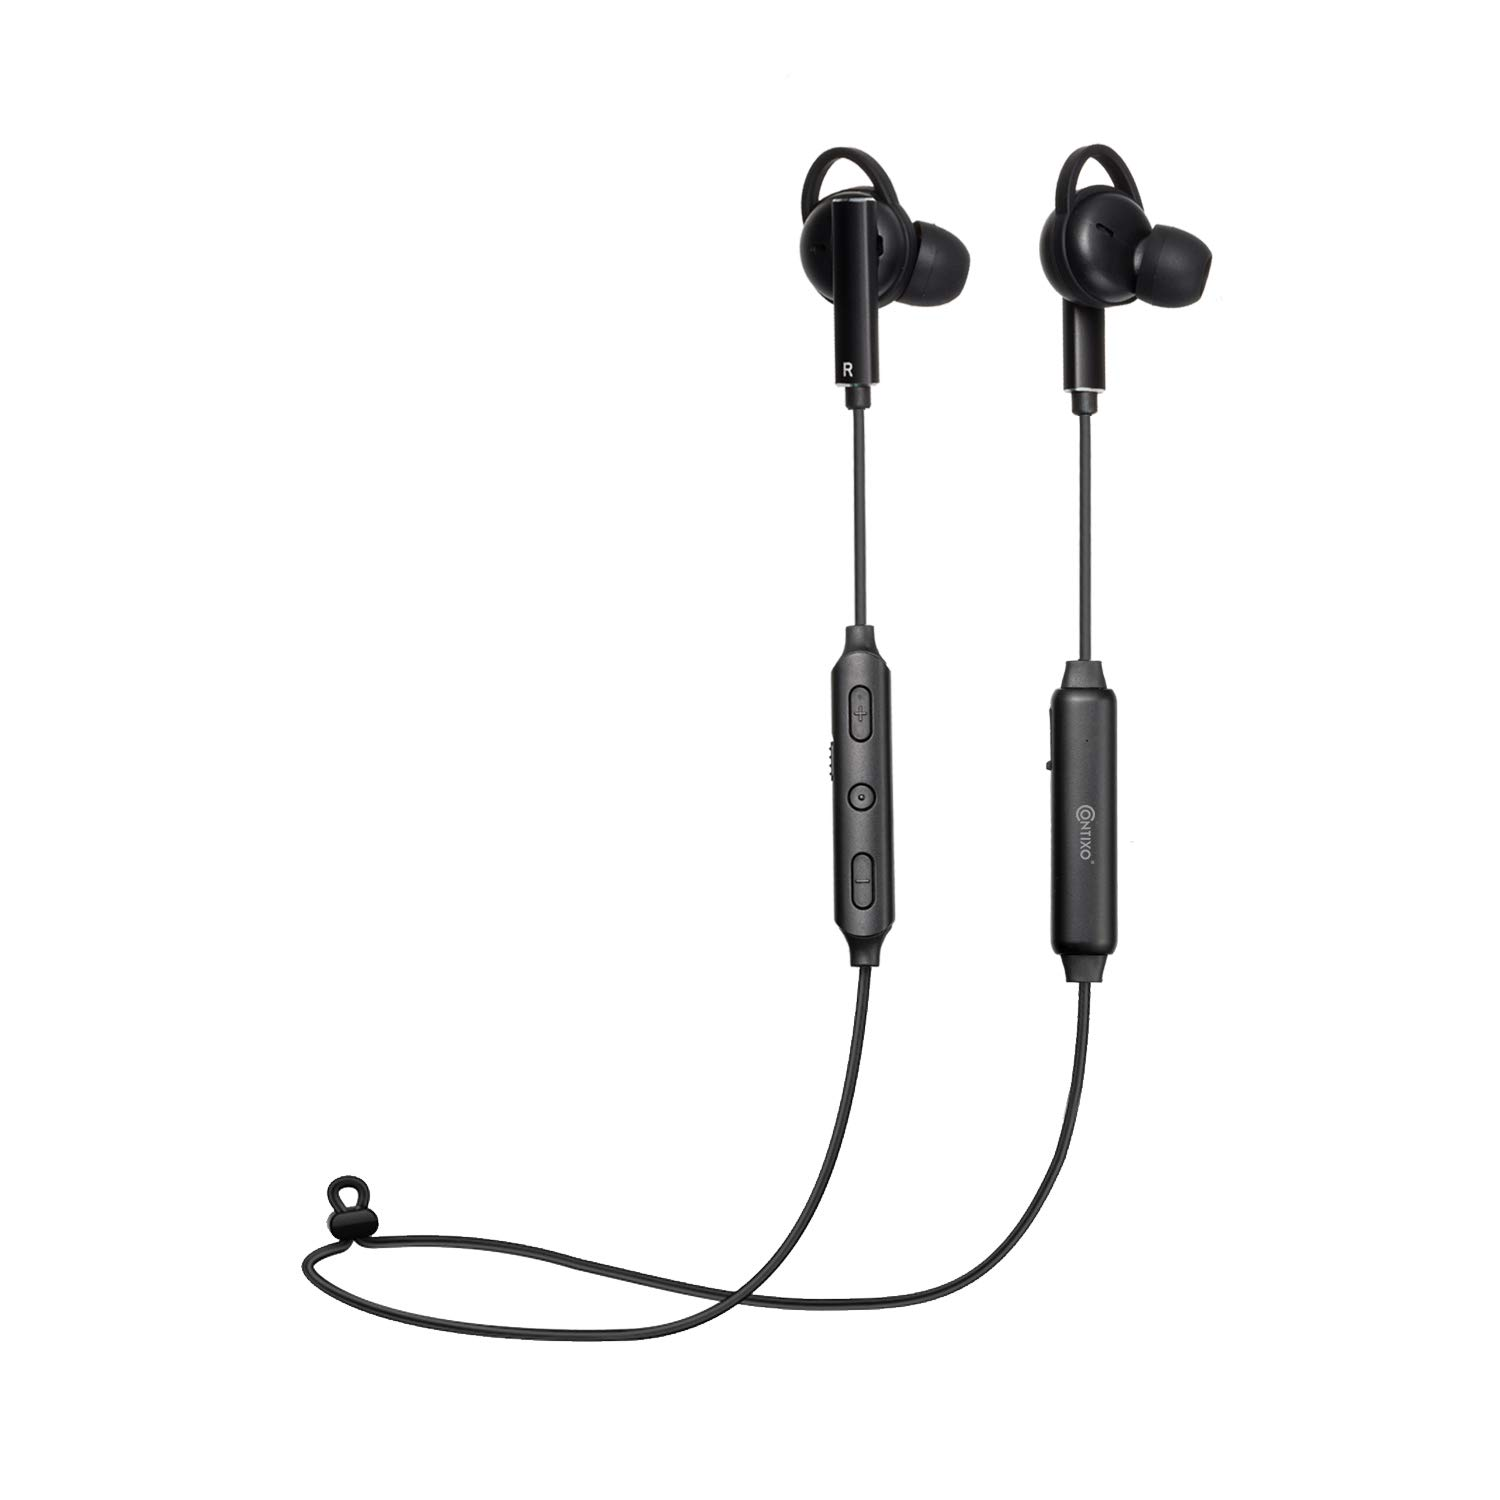 Contixo B3 Active Noise Cancelling Headphones Bluetooth Headphones Wireless Headphones Stereo Earbuds With Mic Bluetooth 4 2 Sports Neckband Headset 8 Hrs Playtime Walmart Com Walmart Com